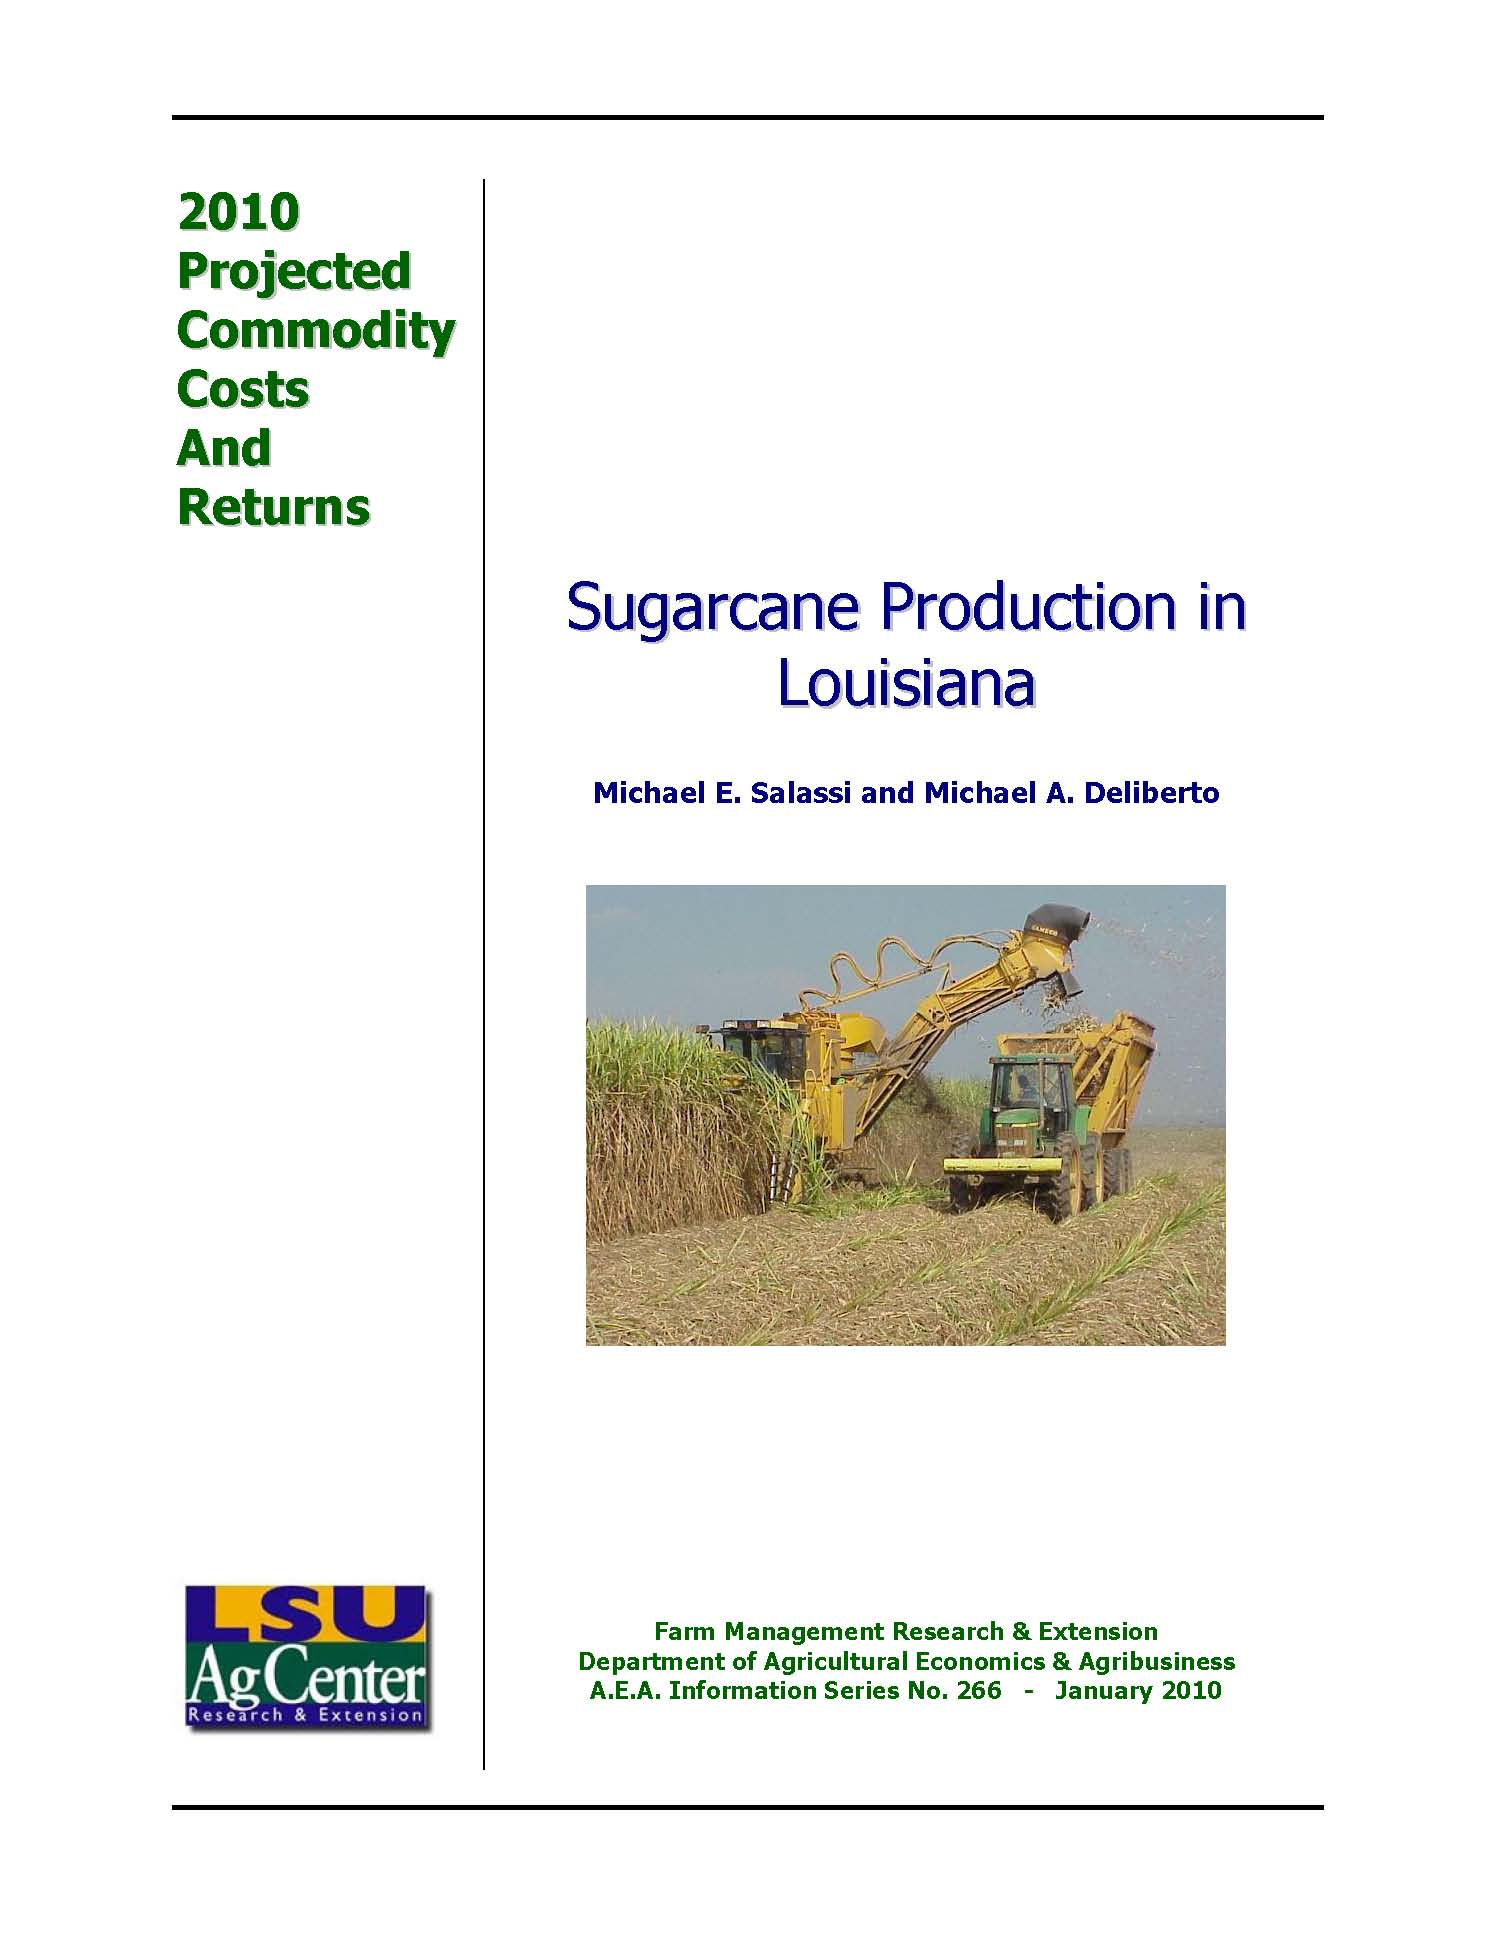 2010 Projected Louisiana Sugarcane Production Costs